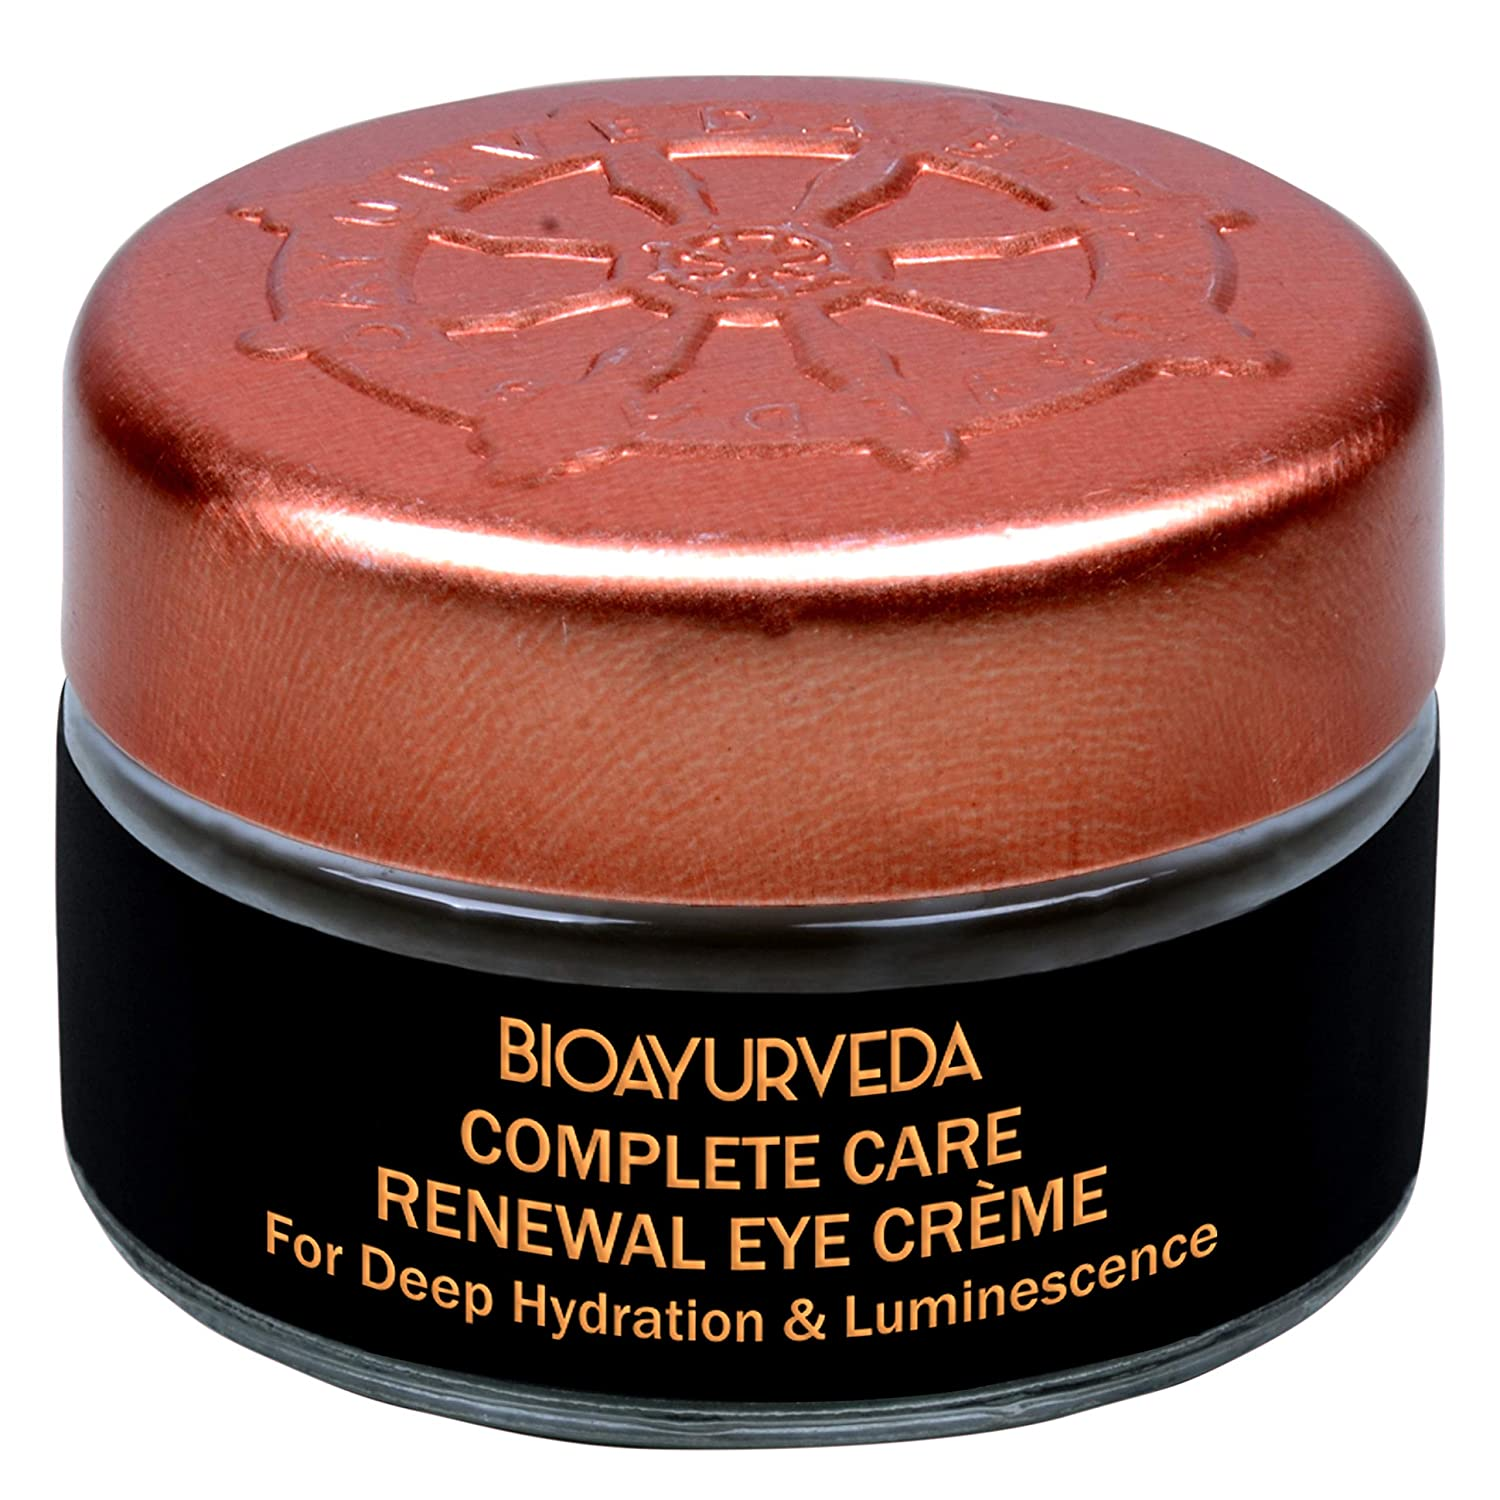 Bioayurveda Eye Cream For Dark Circles and Puffiness, Eyelid Cream Helps To Reduce Crows Feet, Wrinkles & Fine Lines - Pure Anti Aging Restorative Moisturizes Your Skin (0.7 OZ)